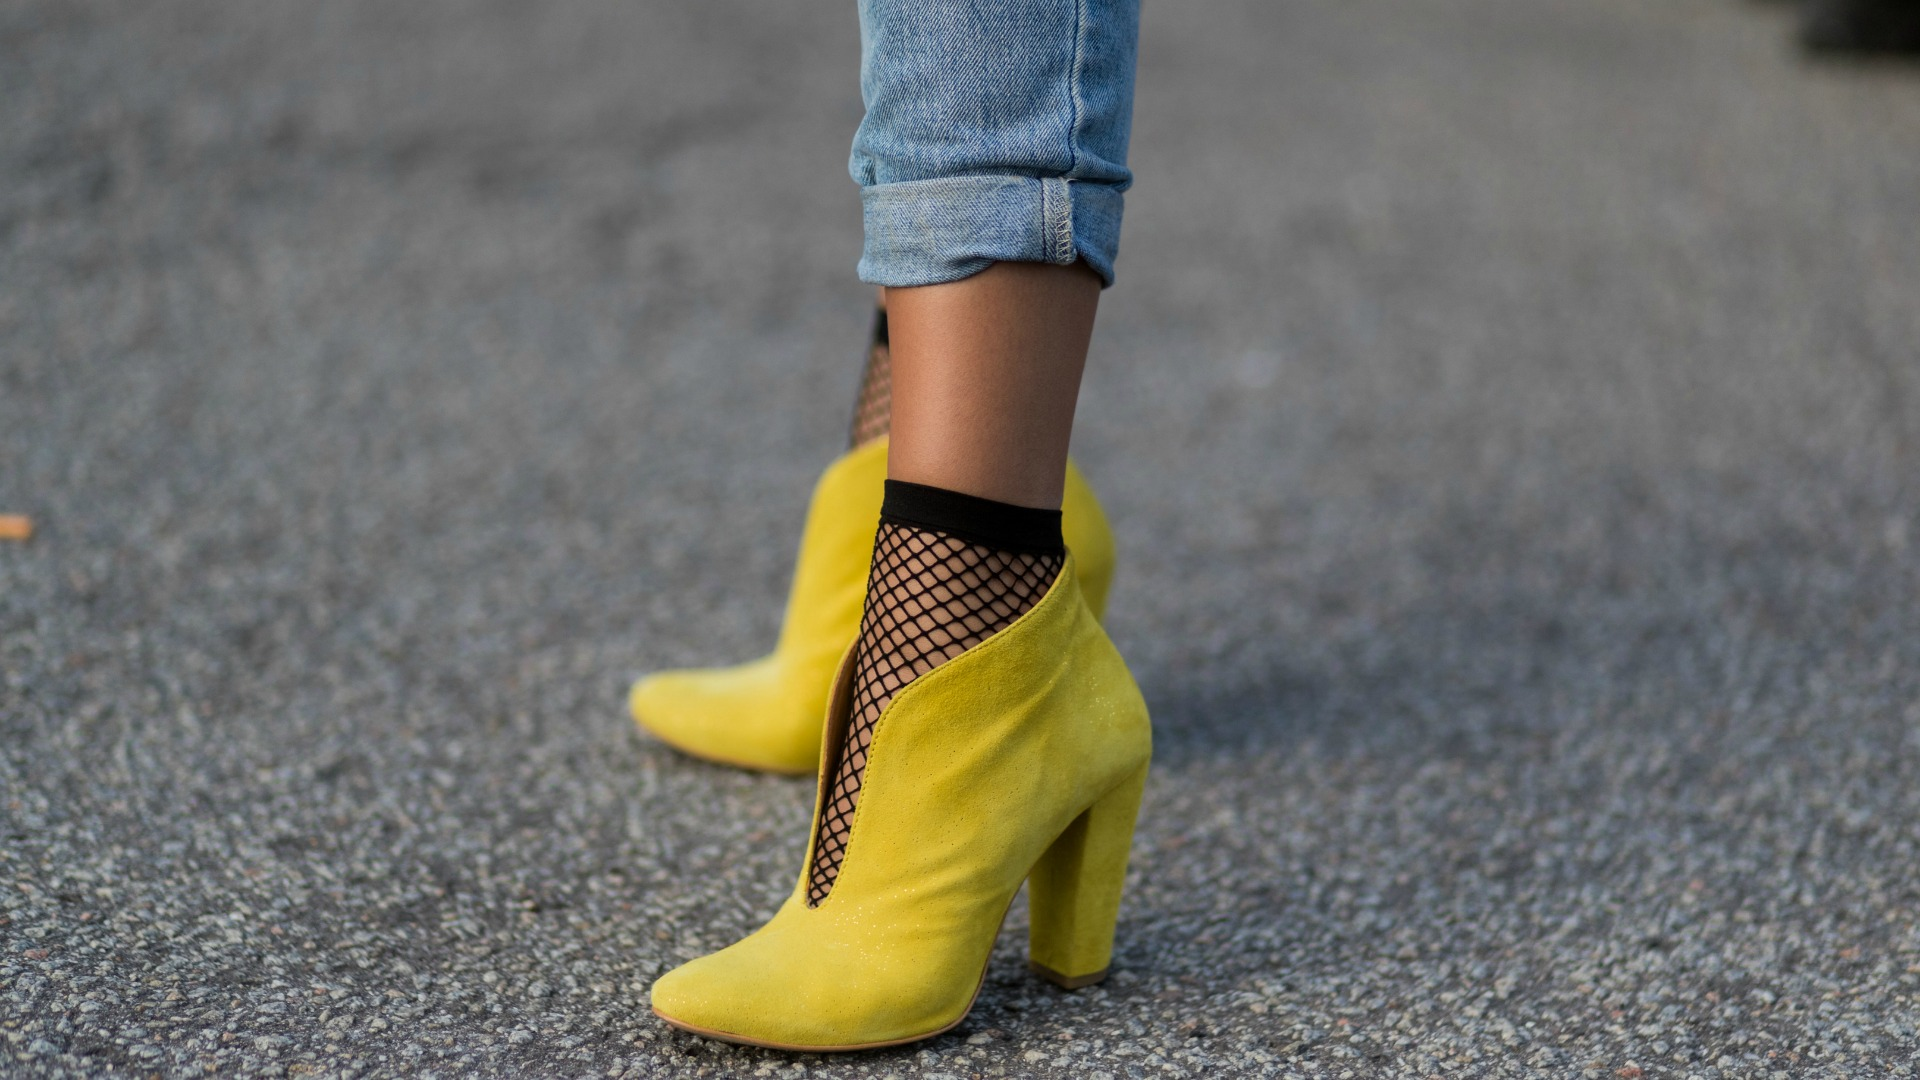 Your Stylish Look With Yellow Shoes Outfit